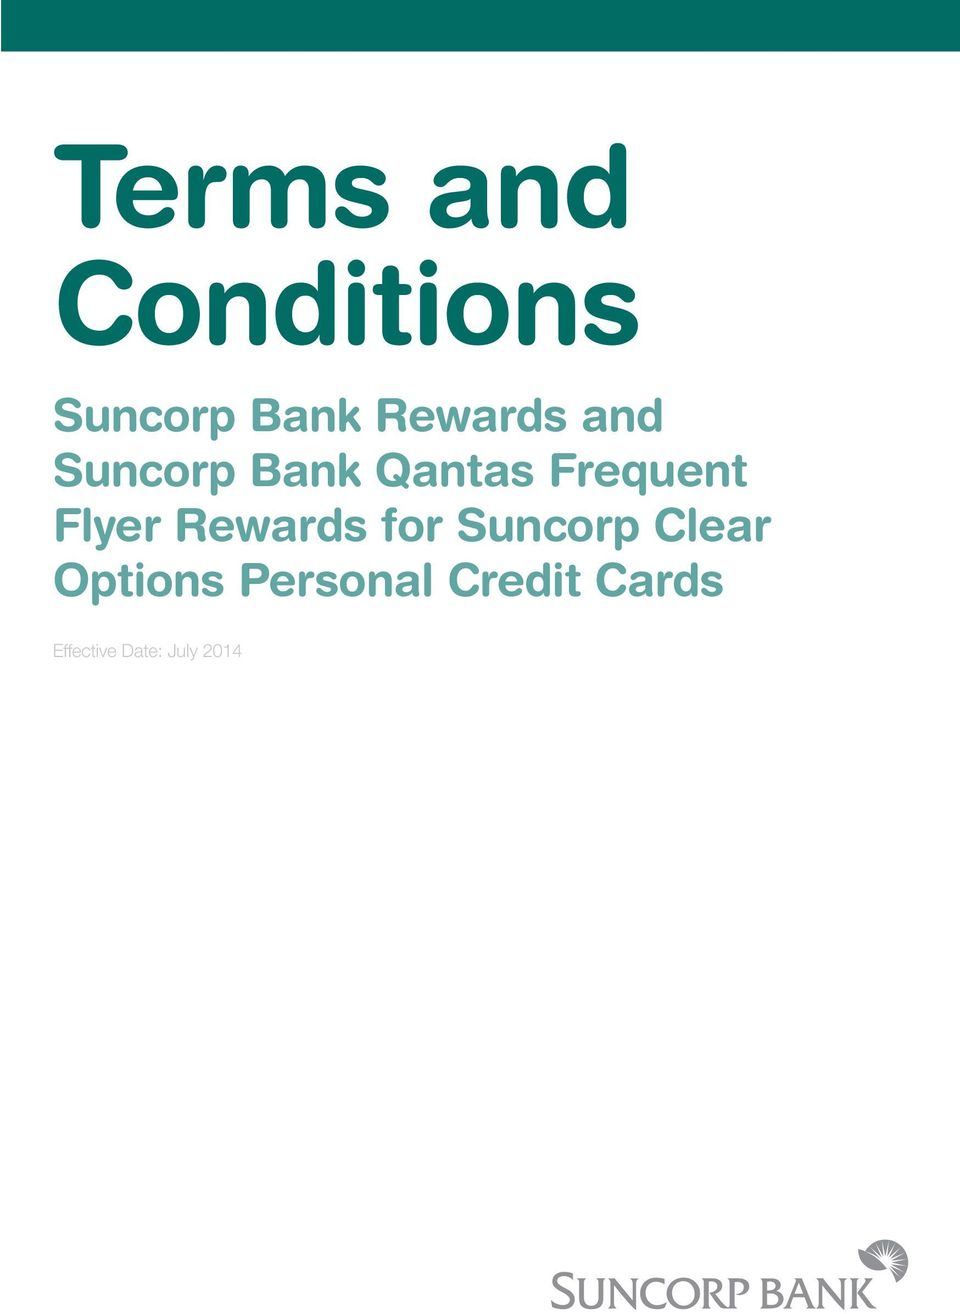 Flyer Rewards for Suncorp Clear Options